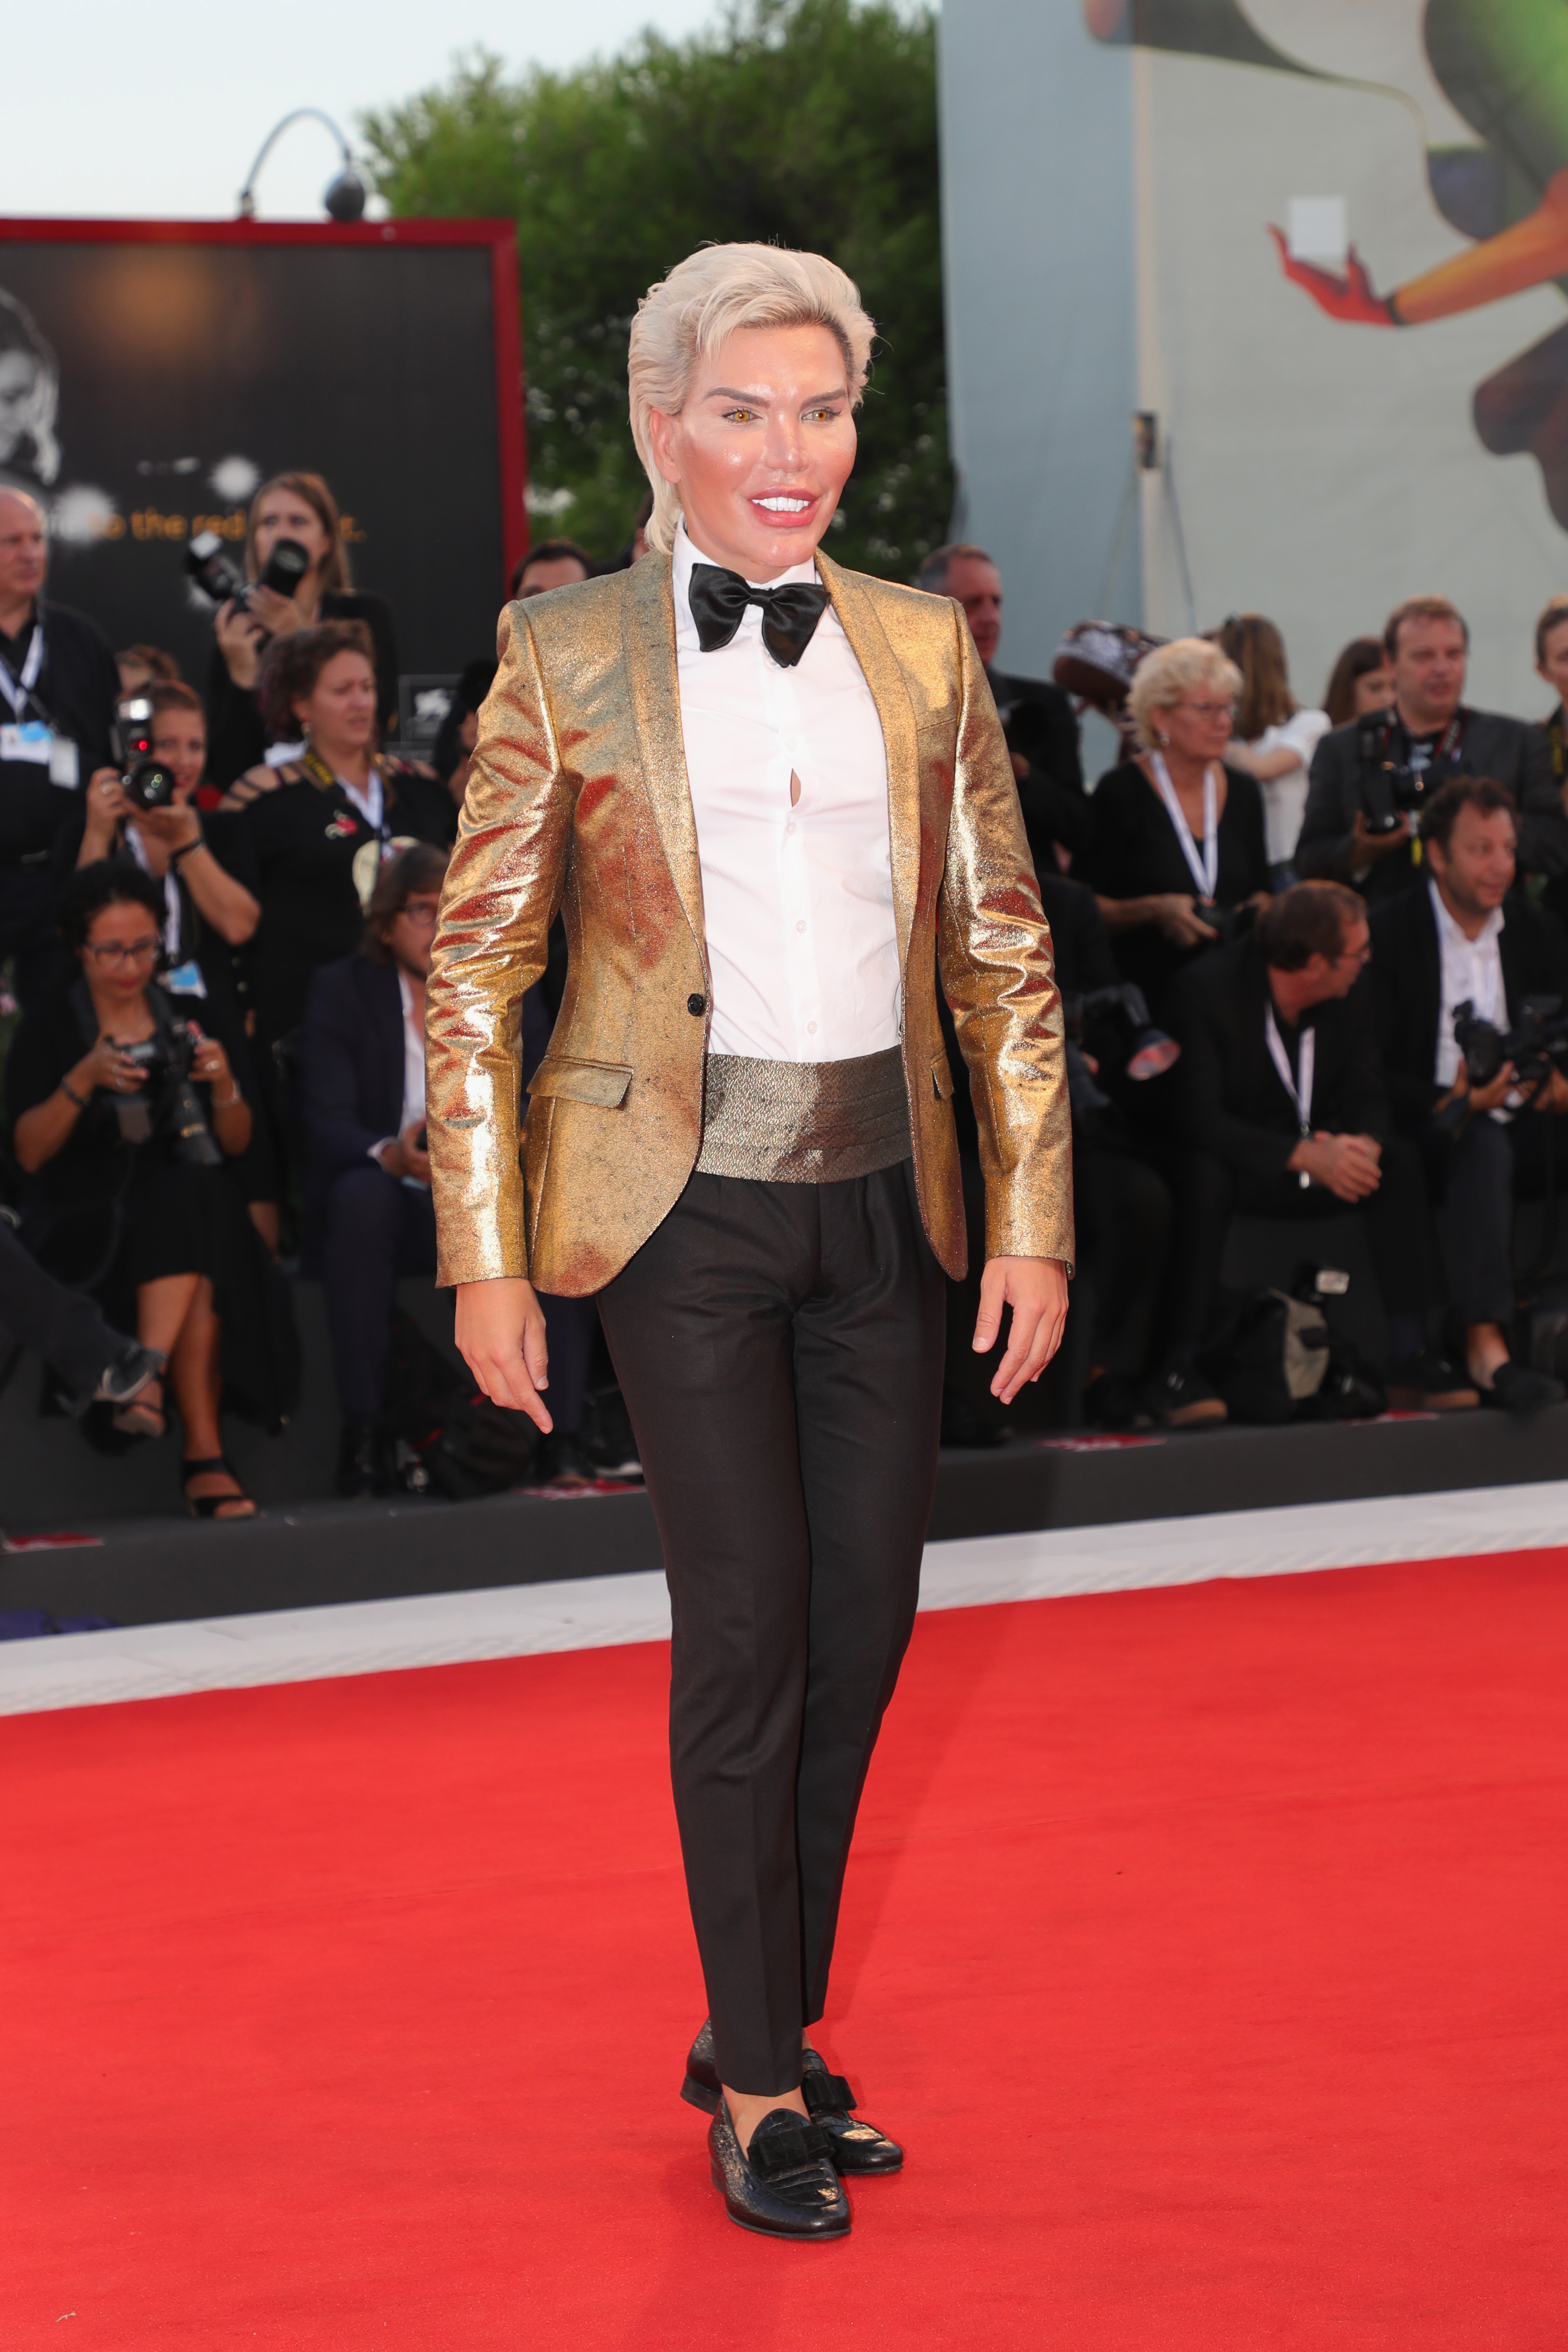 Rodrigo Alves walks the red carpet ahead of the '22 July' screening during the 75th Venice Film Festival at Sala Grande on September 5, 2018, in Venice, Italy. (Getty Images)